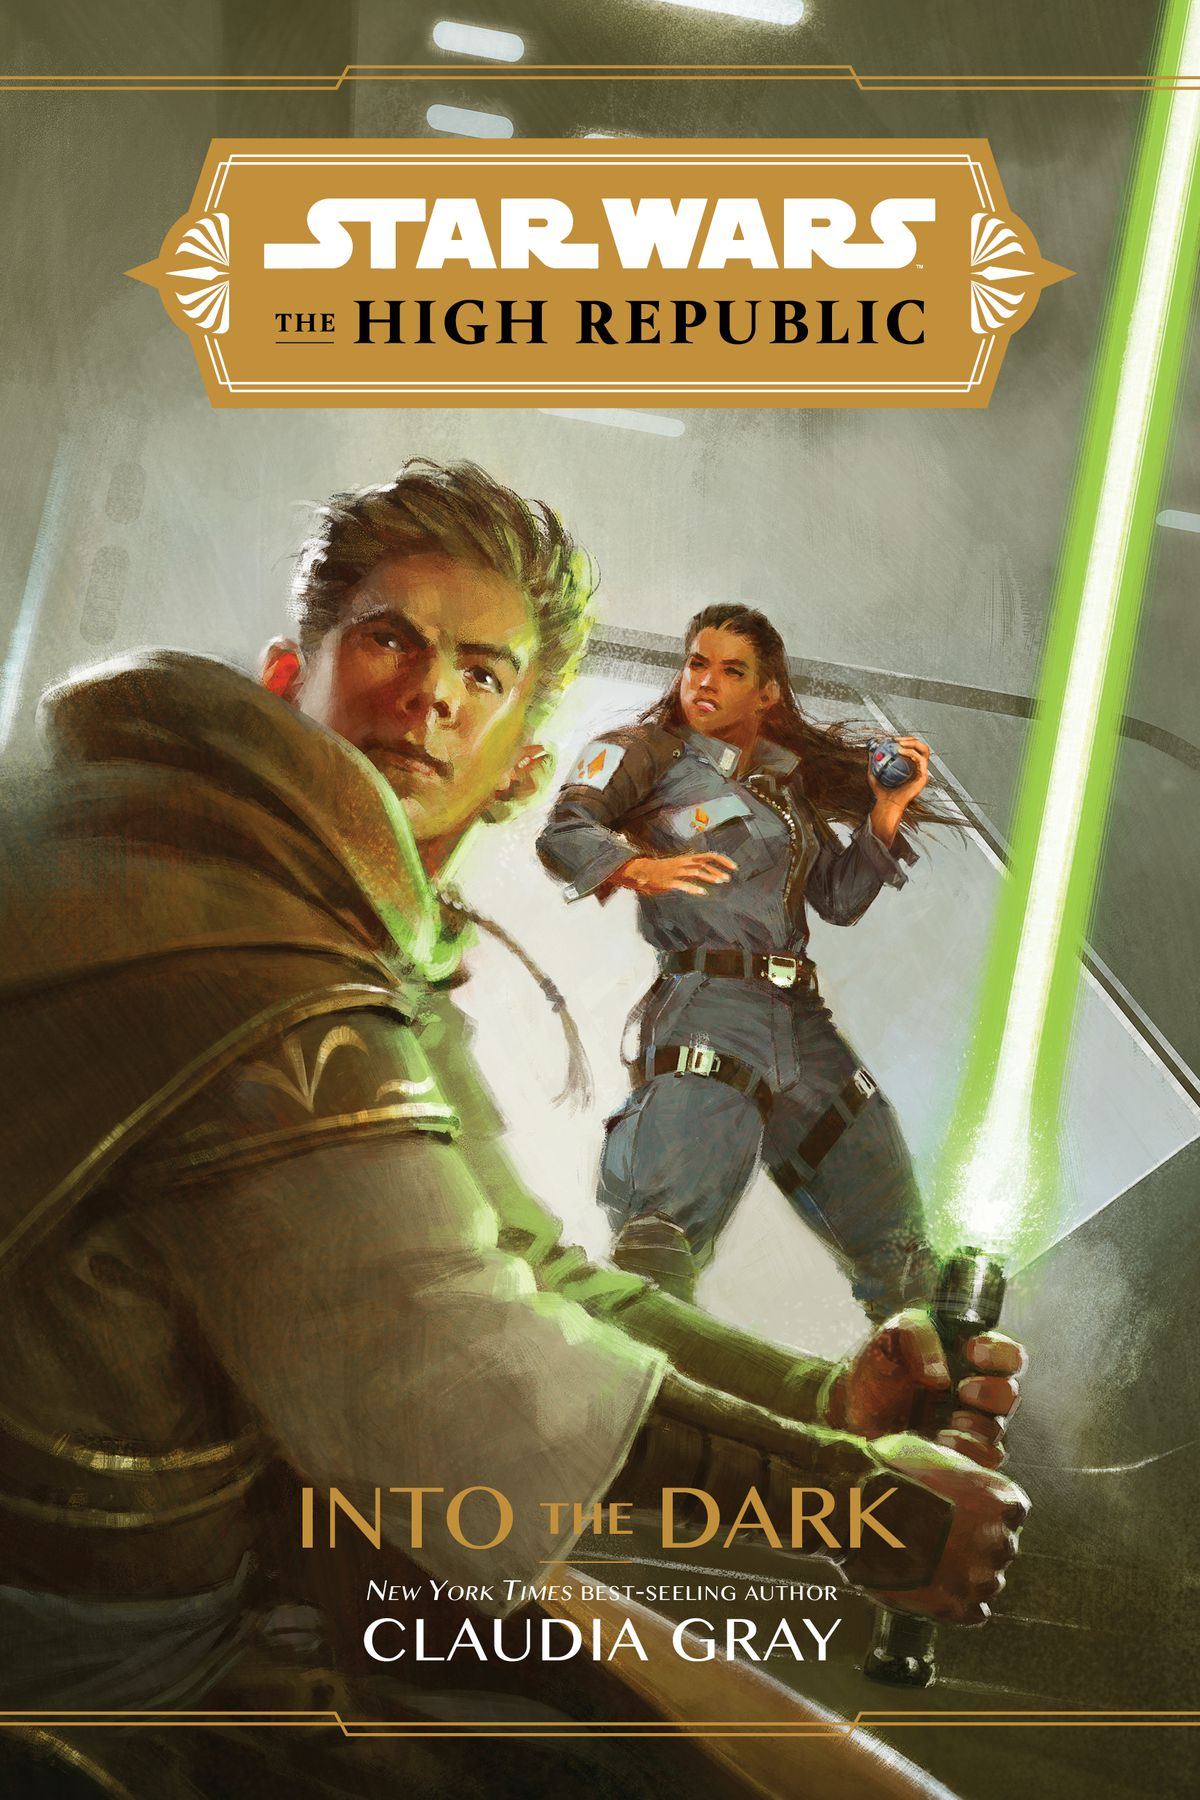 star wars: the high republic: into the dark featuring a dashing jedi with a green saber